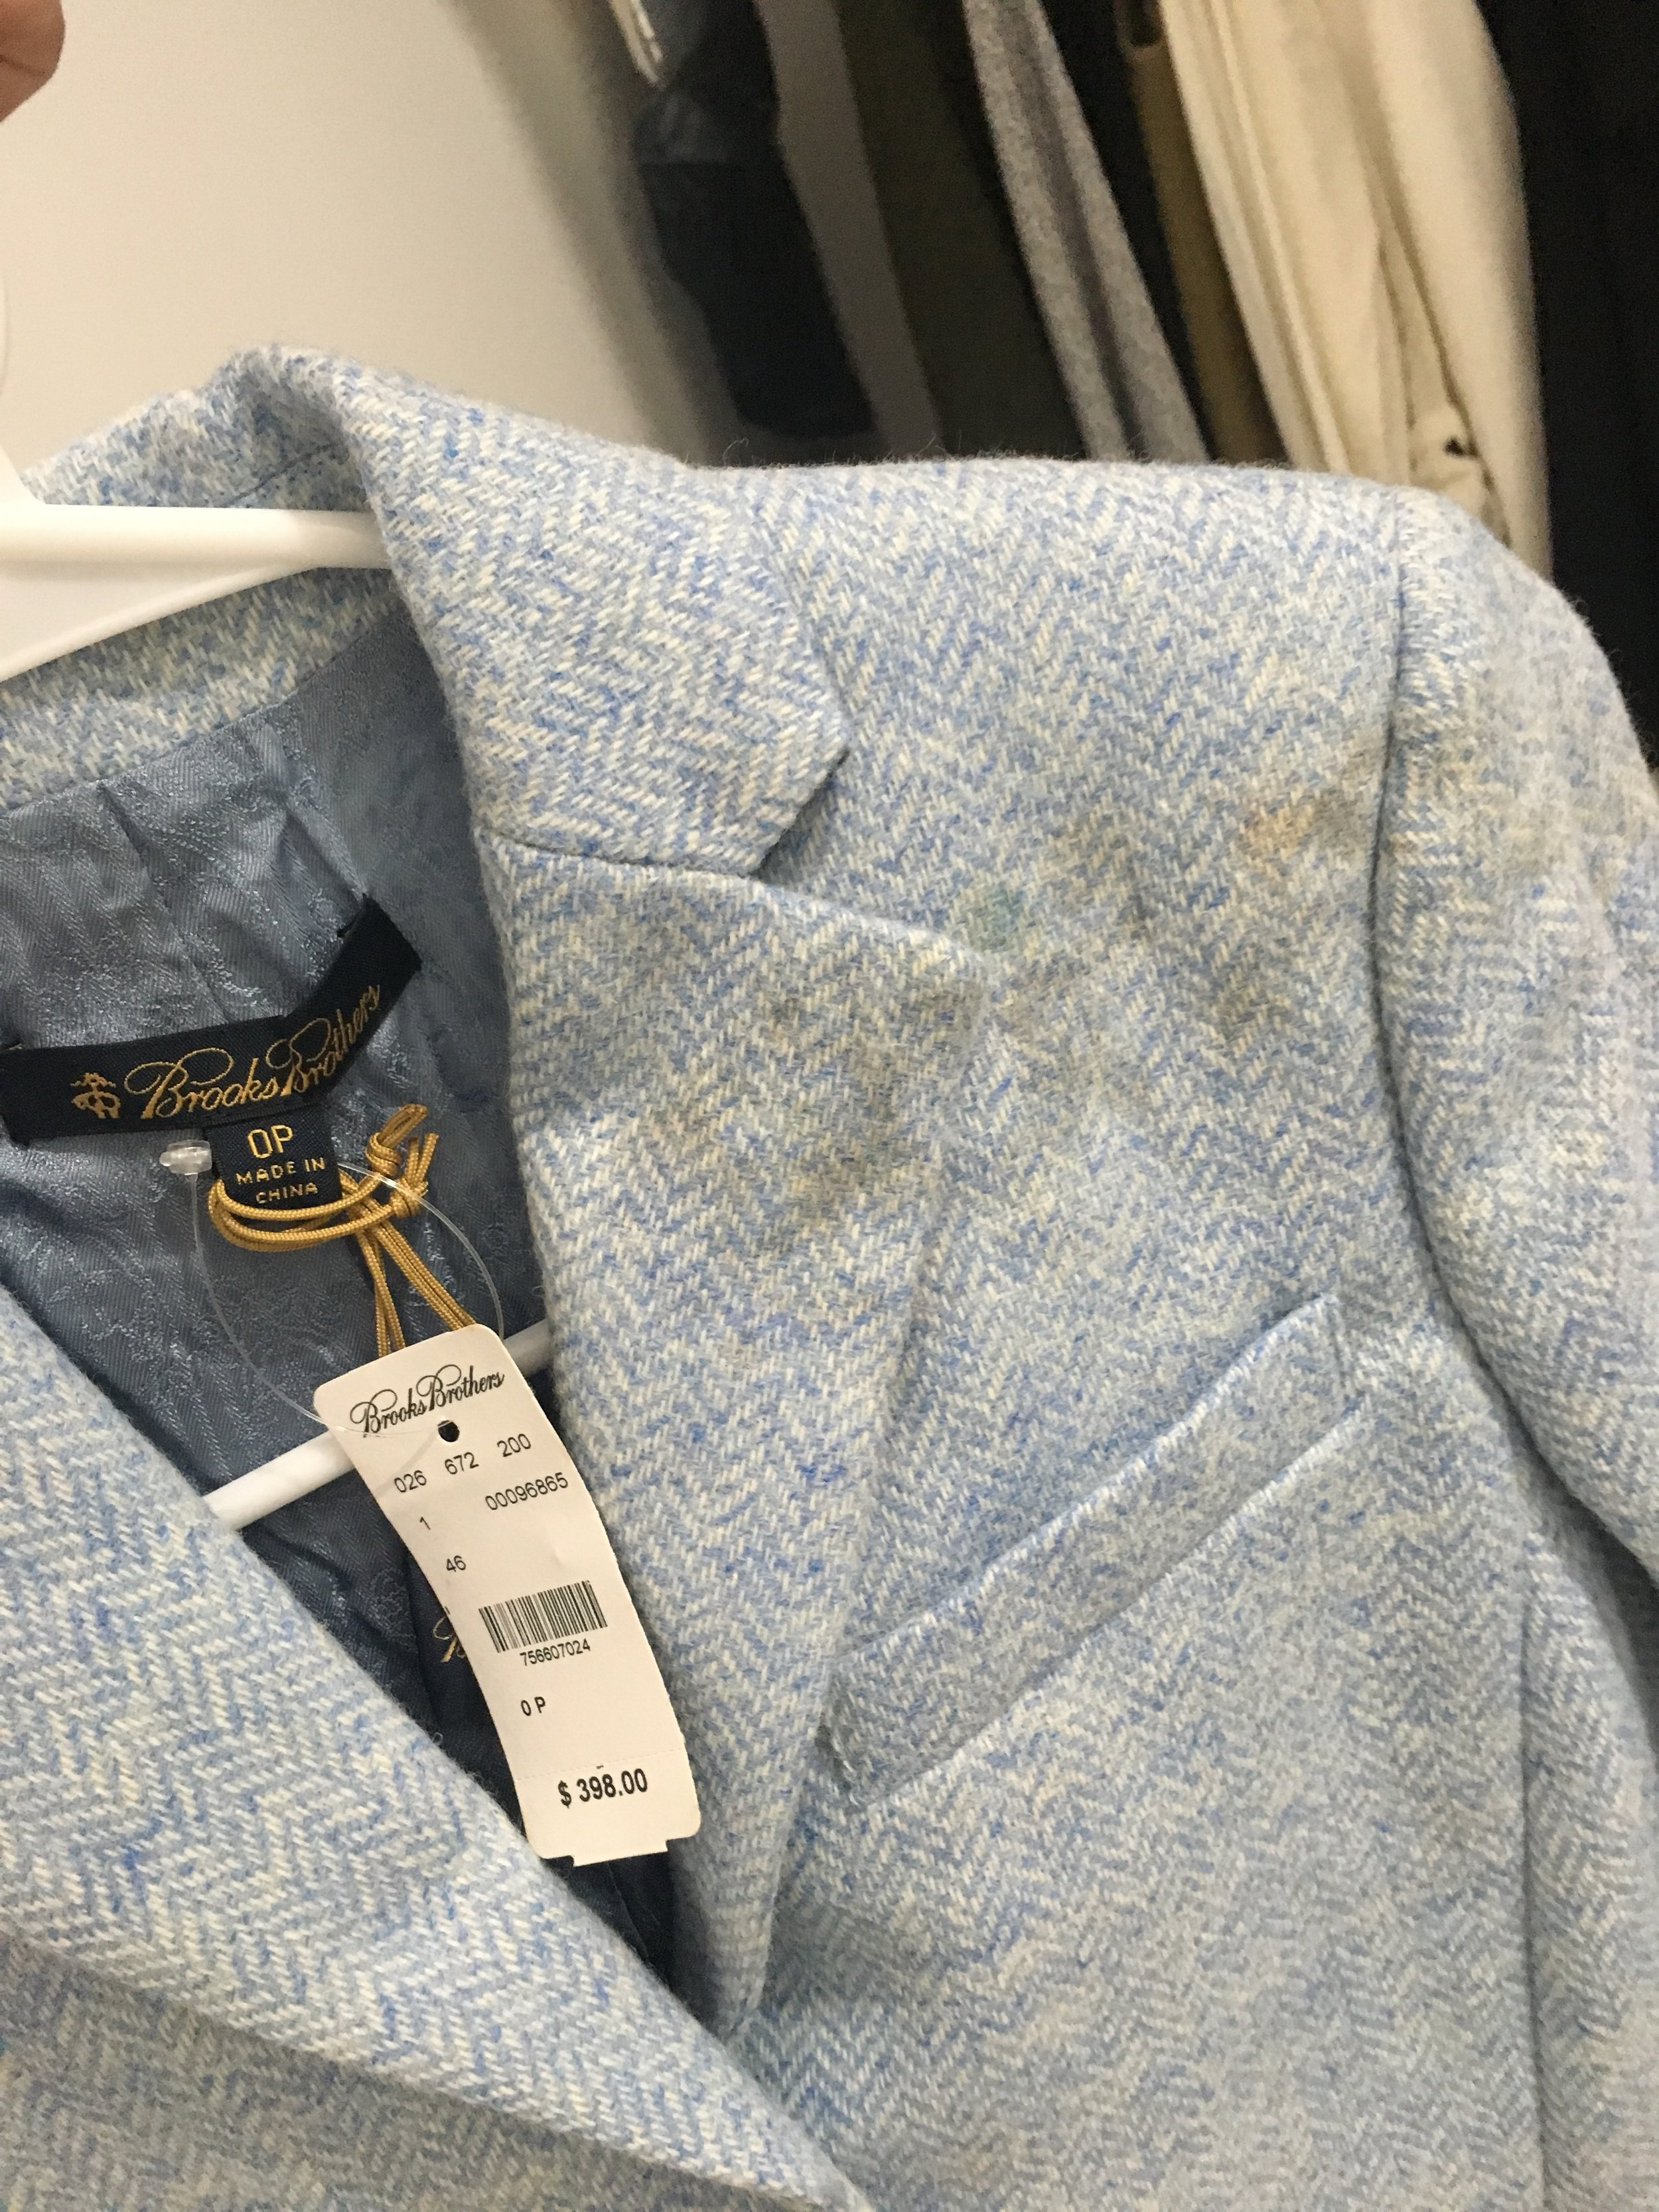 Lauren Pannell's Brooks Brothers blazer with damage.